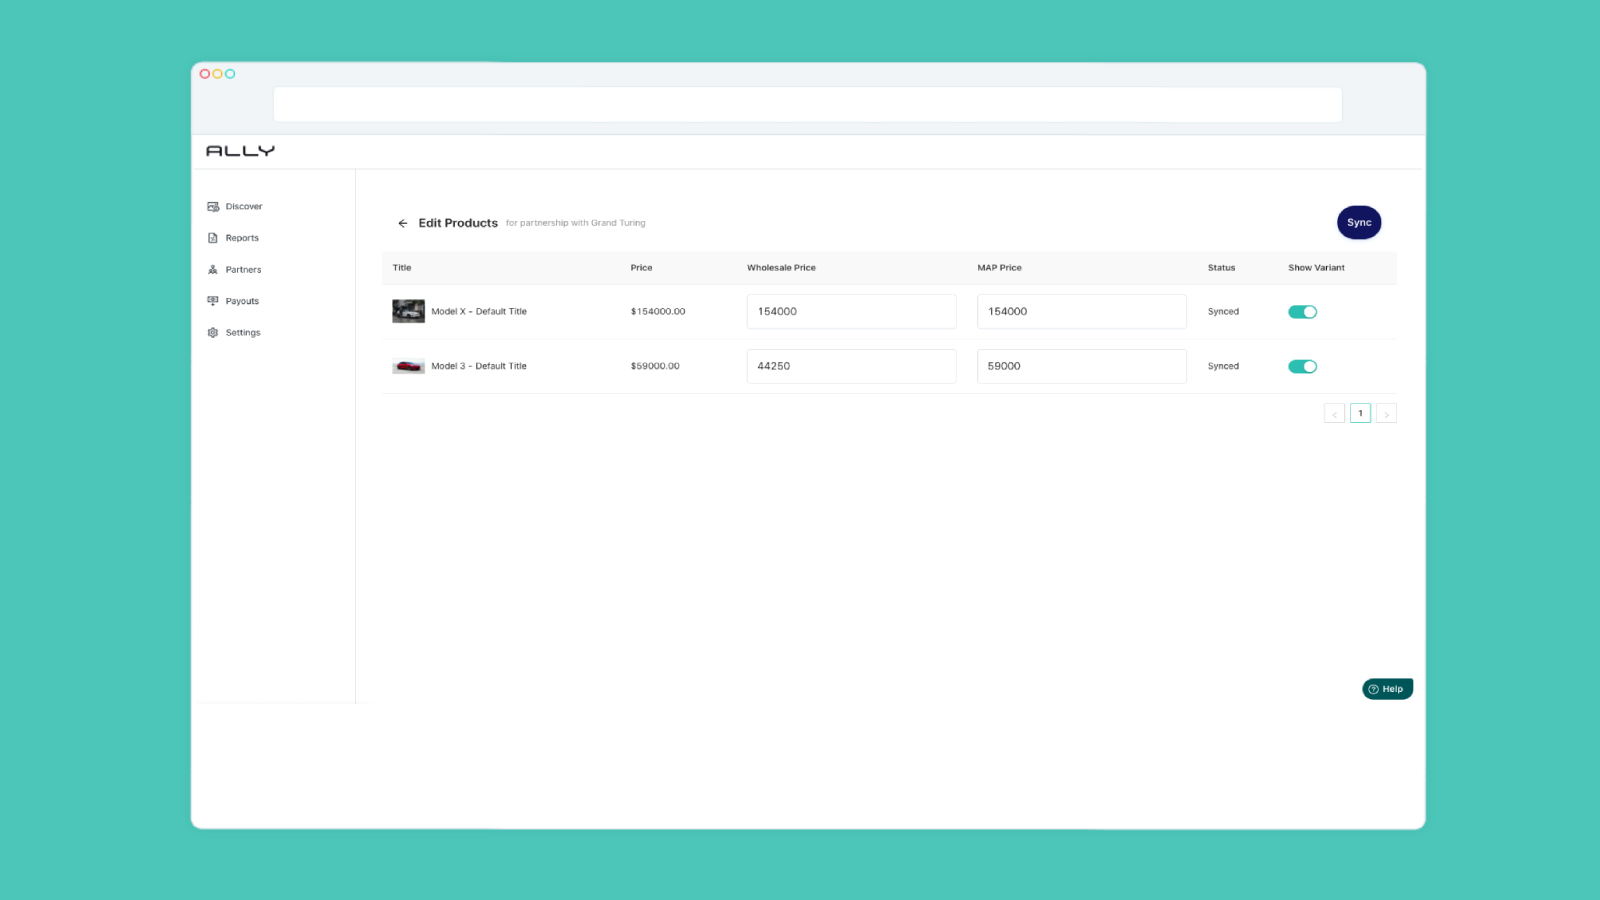 Ally dashboards manage products. List of products and controls.